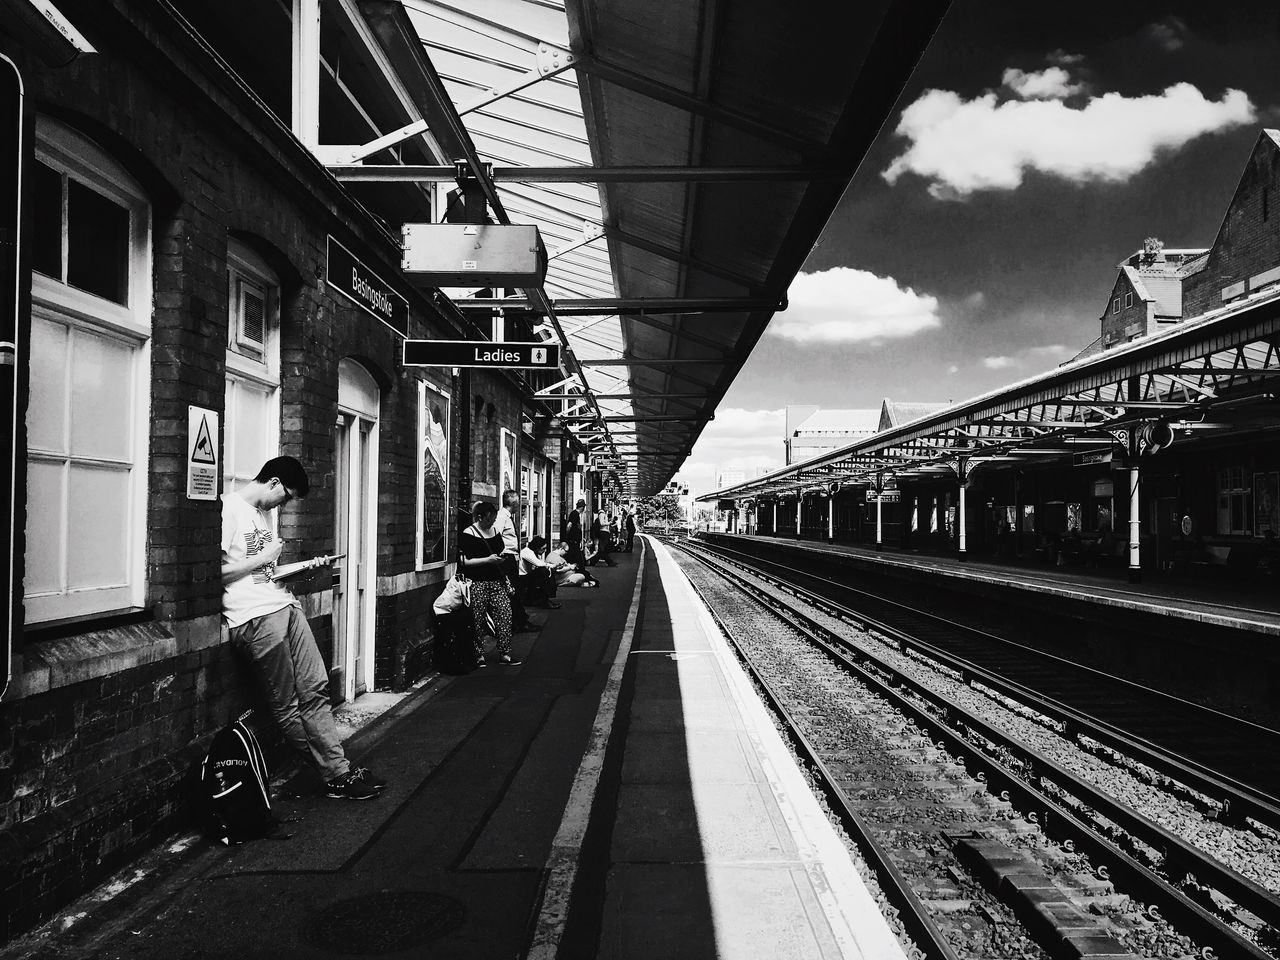 transportation, railroad track, one person, real people, rail transportation, public transportation, mode of transport, railroad station platform, day, architecture, full length, sky, men, built structure, outdoors, lifestyles, building exterior, people